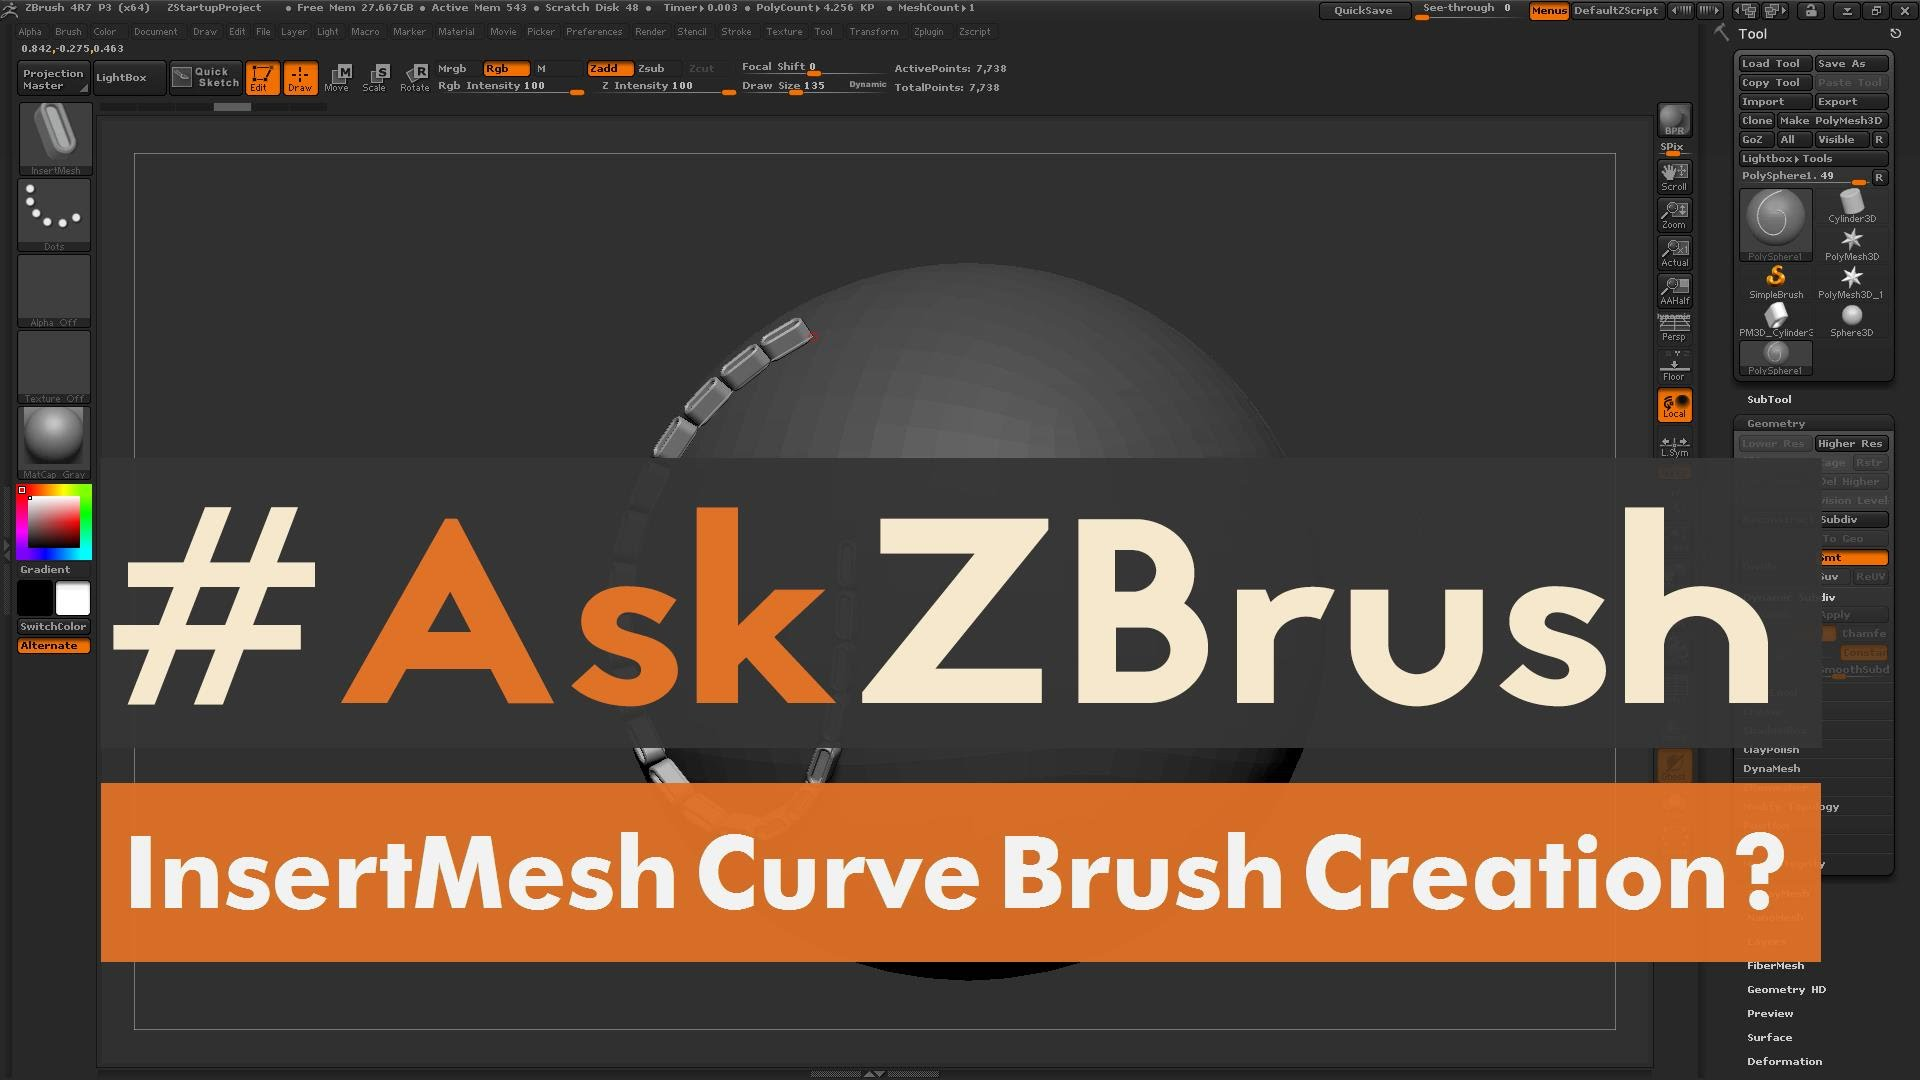 "#AskZBrush: ""How can I create an Insert Mesh Curve Brush?"""